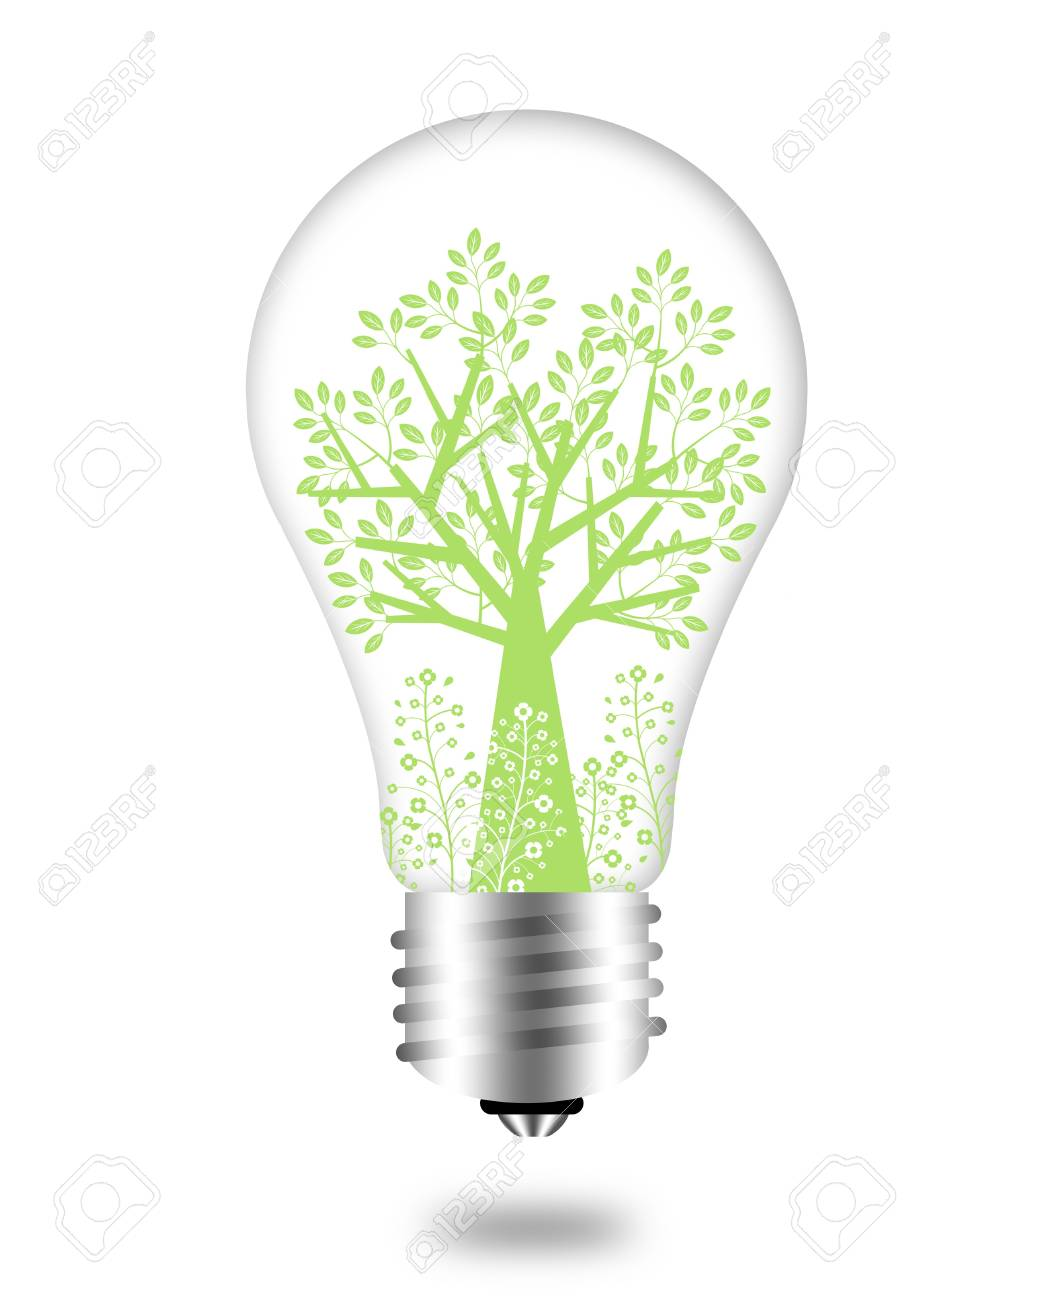 Eco Friendly Bulb with Green Tree and Leaves Illustration Stock Illustration - 8559325